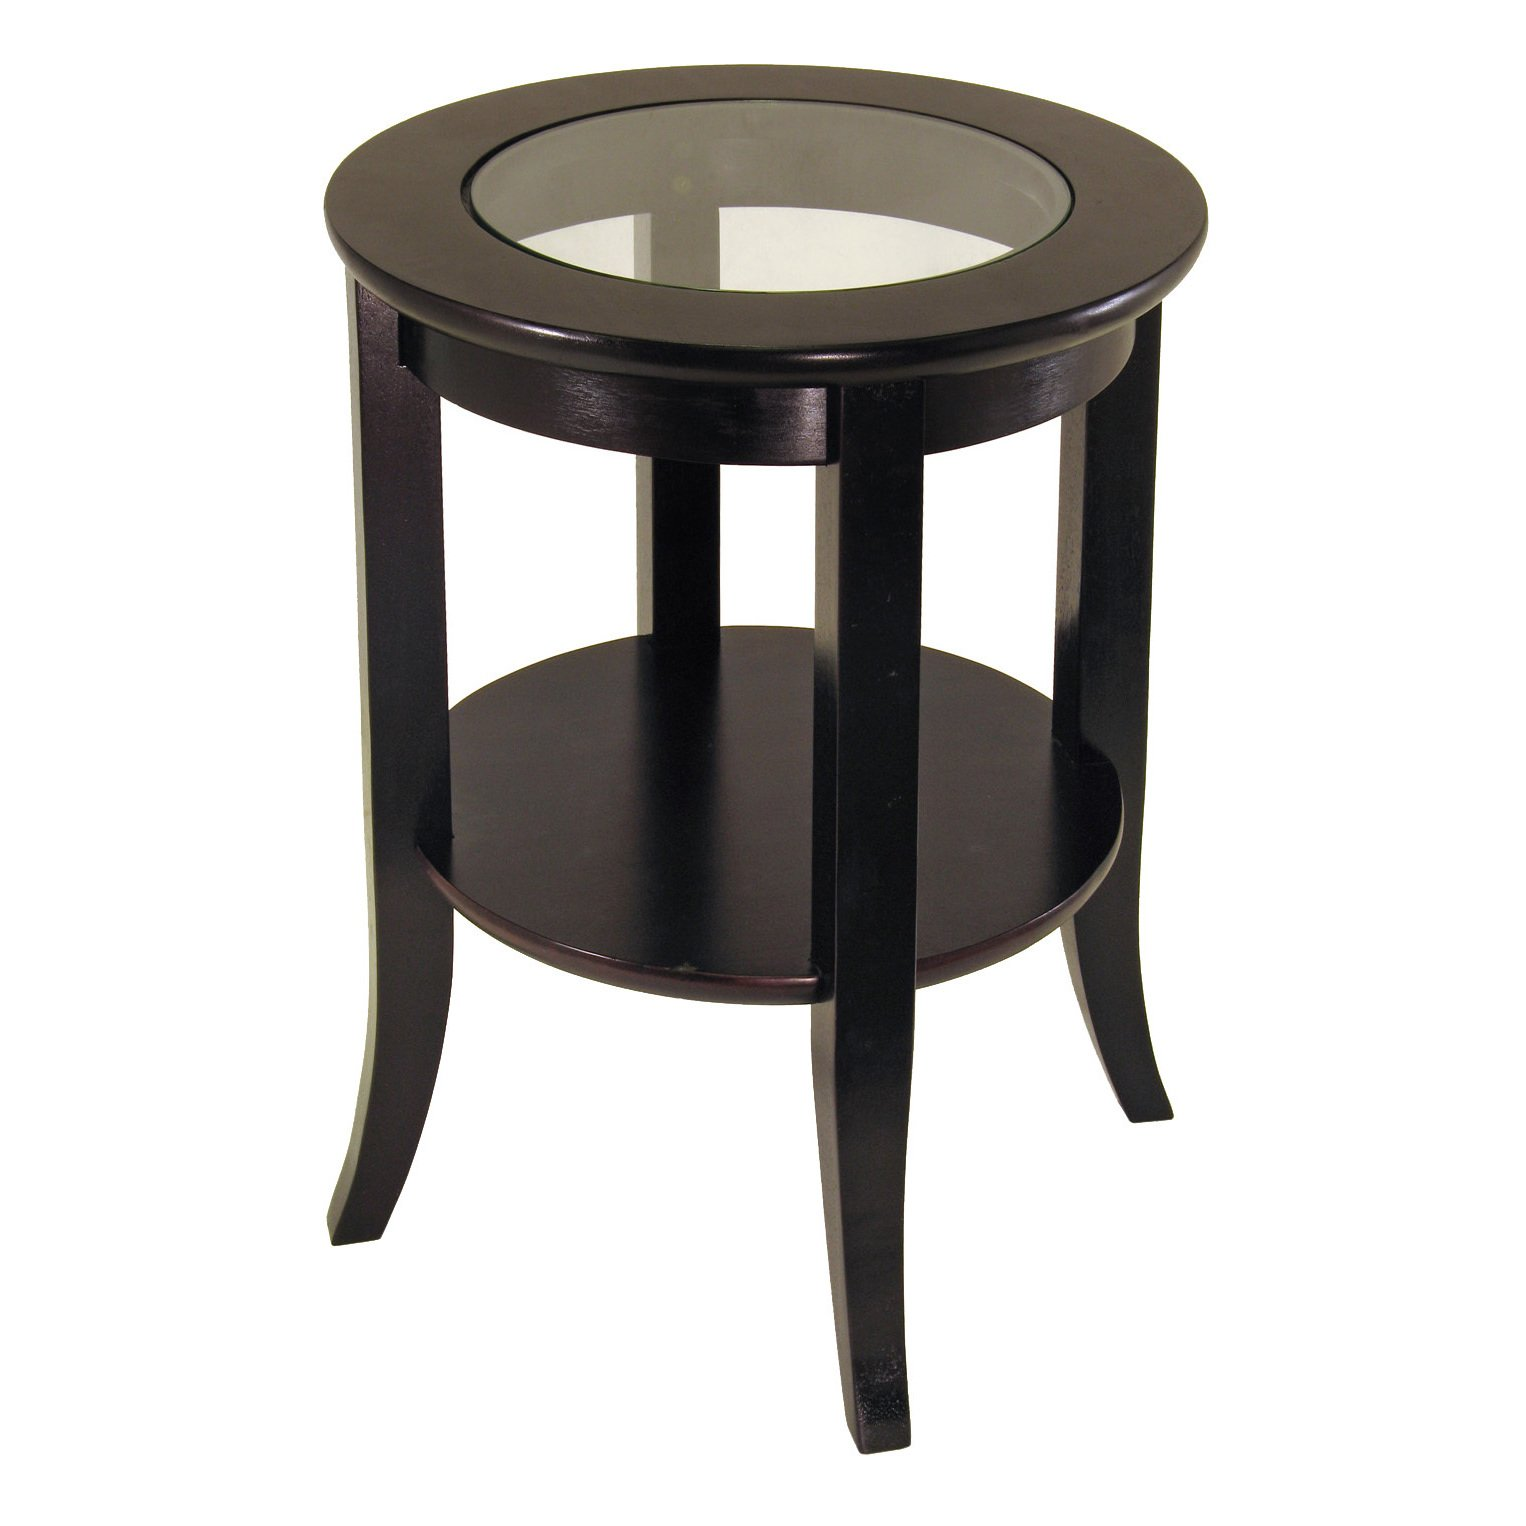 copper grove shasta trinity glass inset round end table with winsome genoa flared legs cassie accent free shipping today replacement couch hourglass antique nesting tables inlay